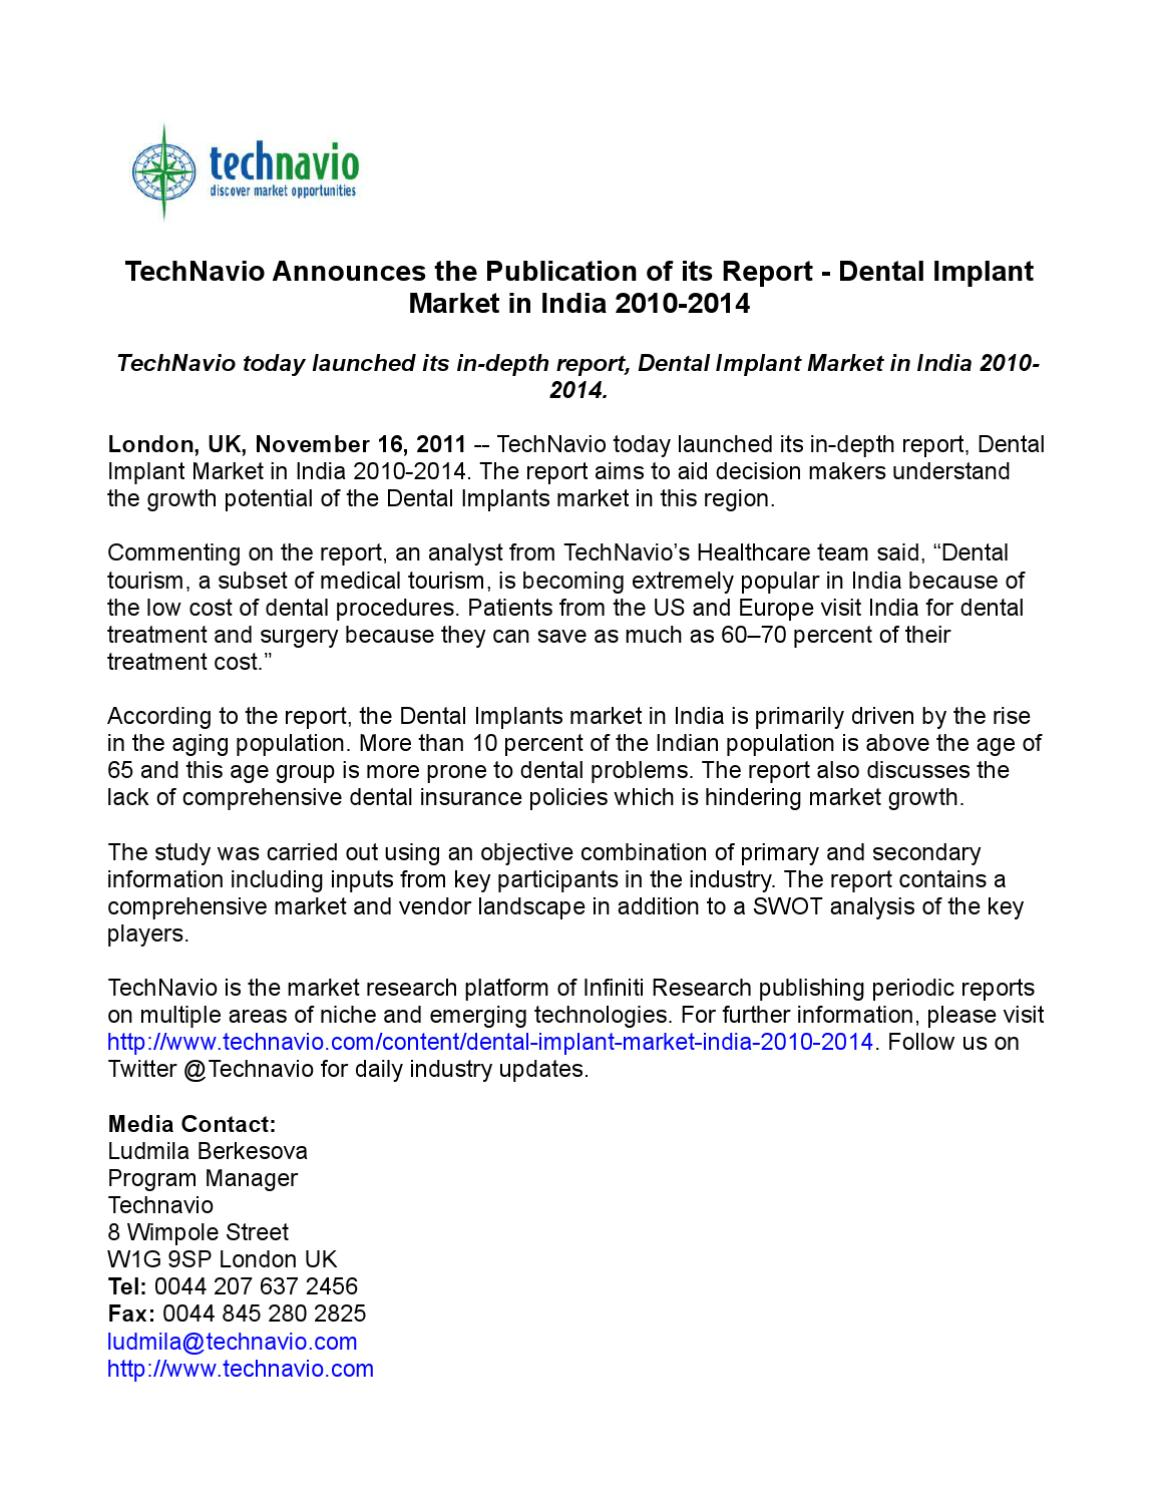 Technavio Announces The Publication Of Its Report Dental Implant Market In India 2010 2014 By Online Pr Dist Issuu